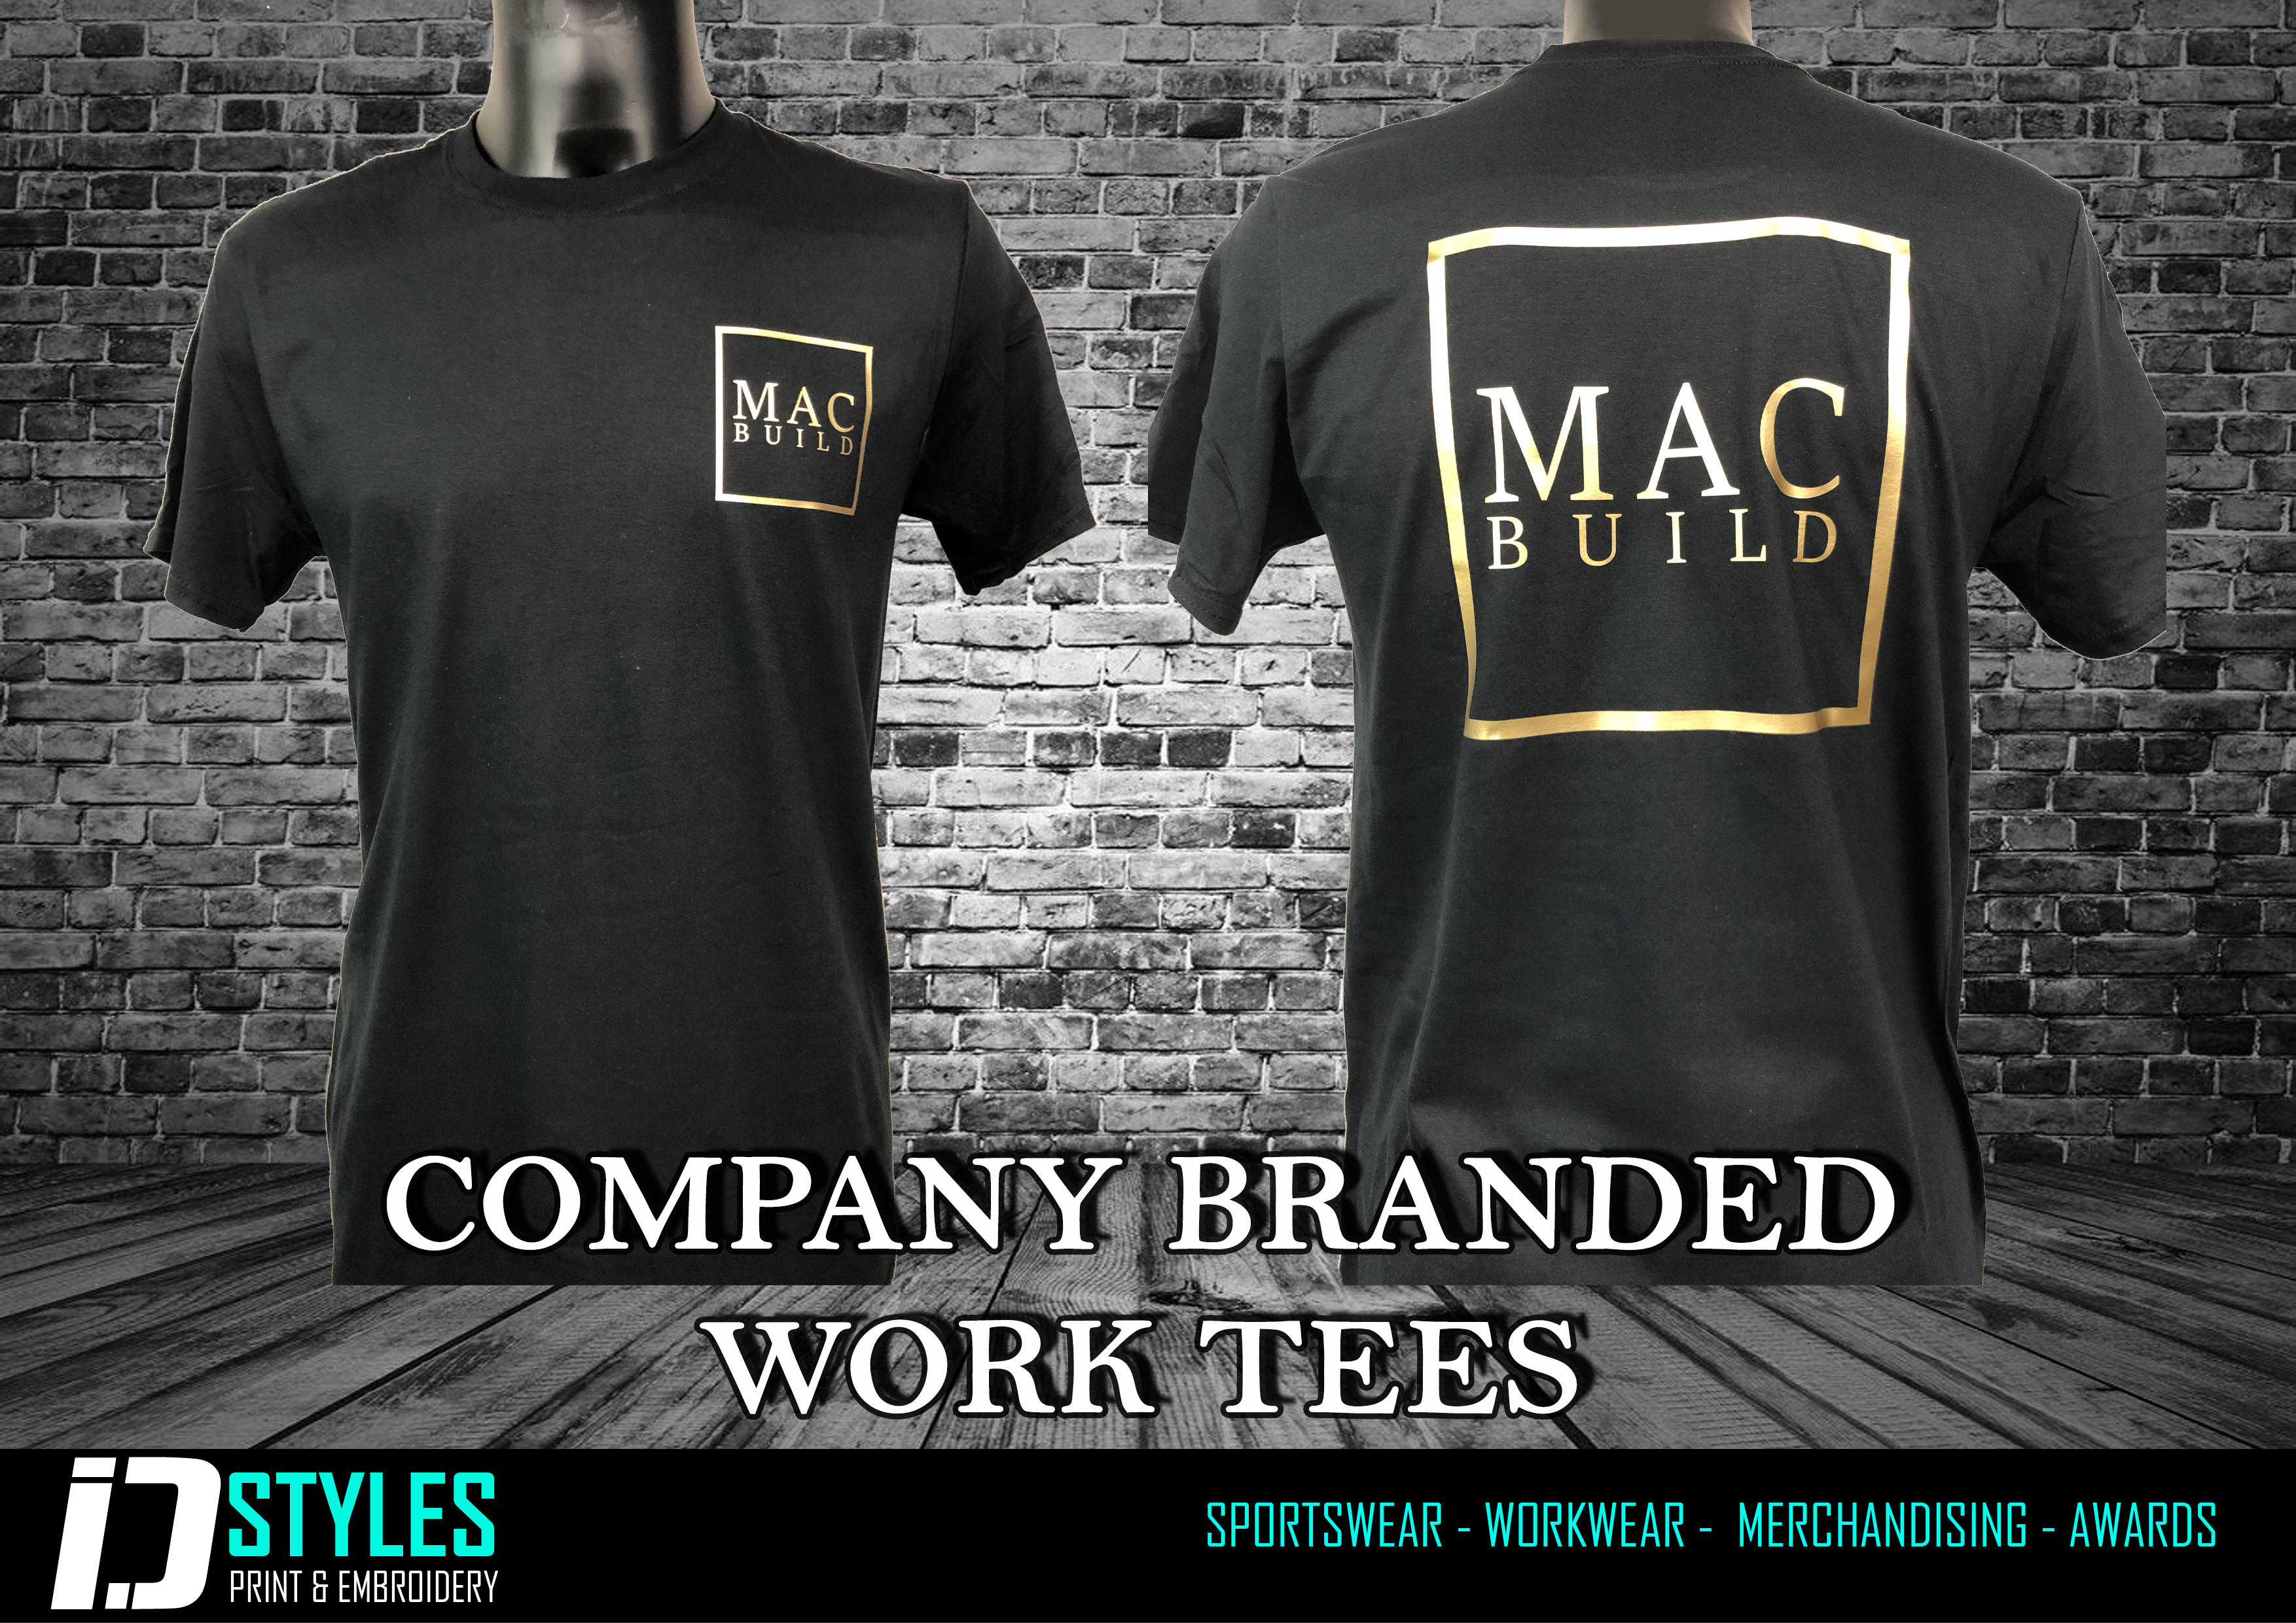 Company branded work tees.jpg